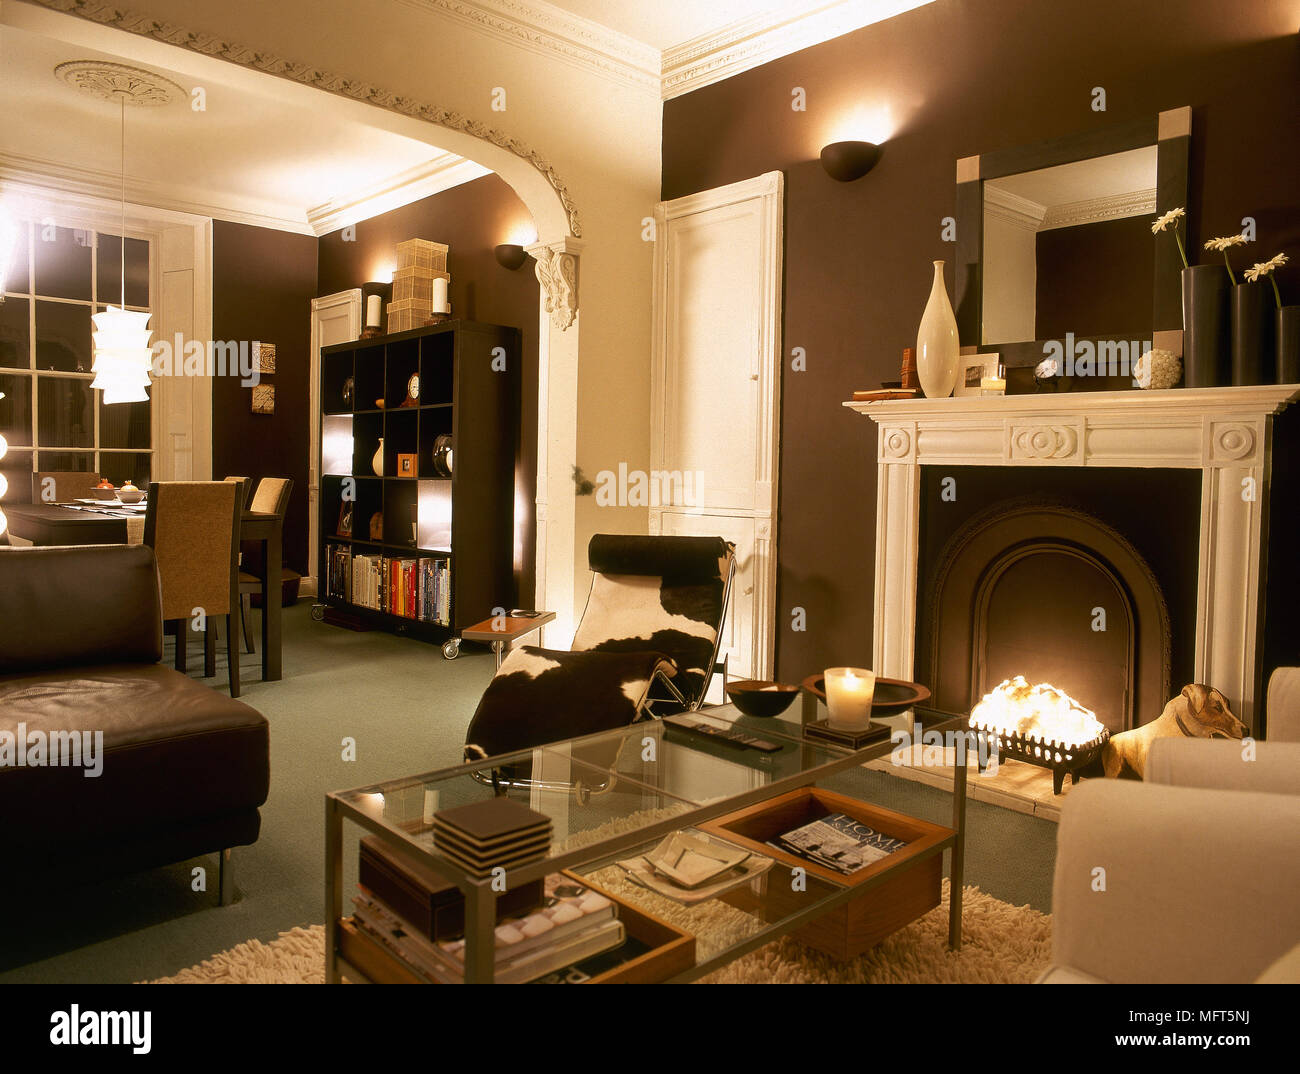 A Modern Open Plan Sitting Room With Dining Area Fireplace Glass Coffee Table Le Corbusier Recliner Stock Photo Alamy